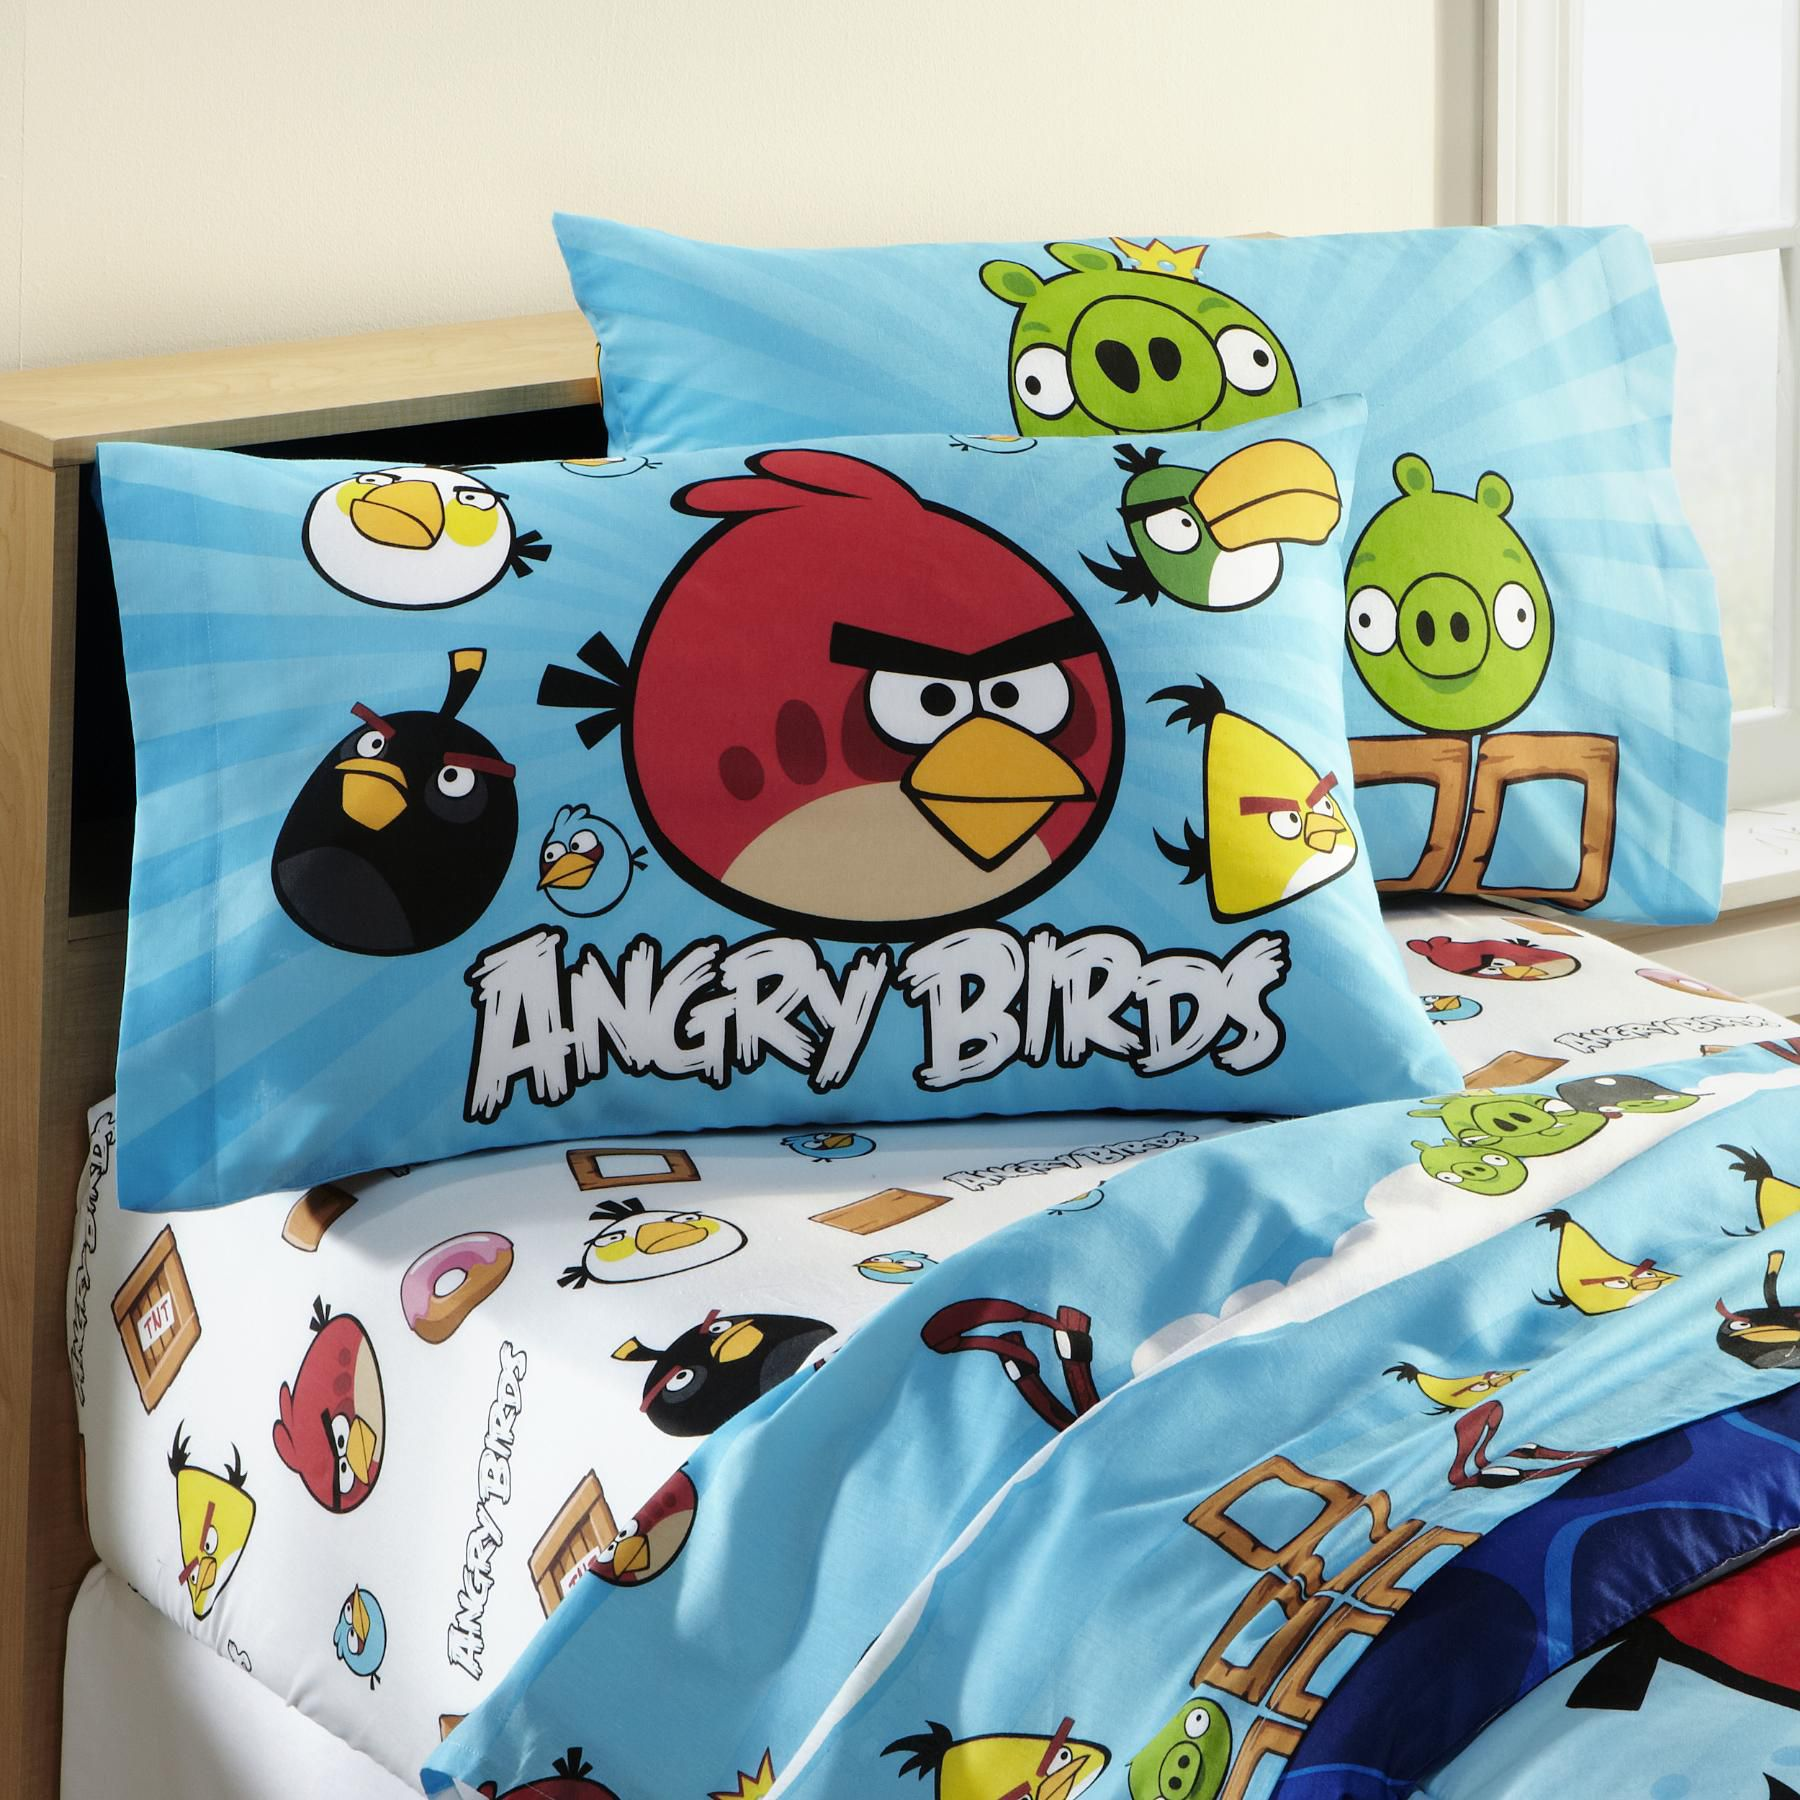 Child's Angry Birds Pillowcase